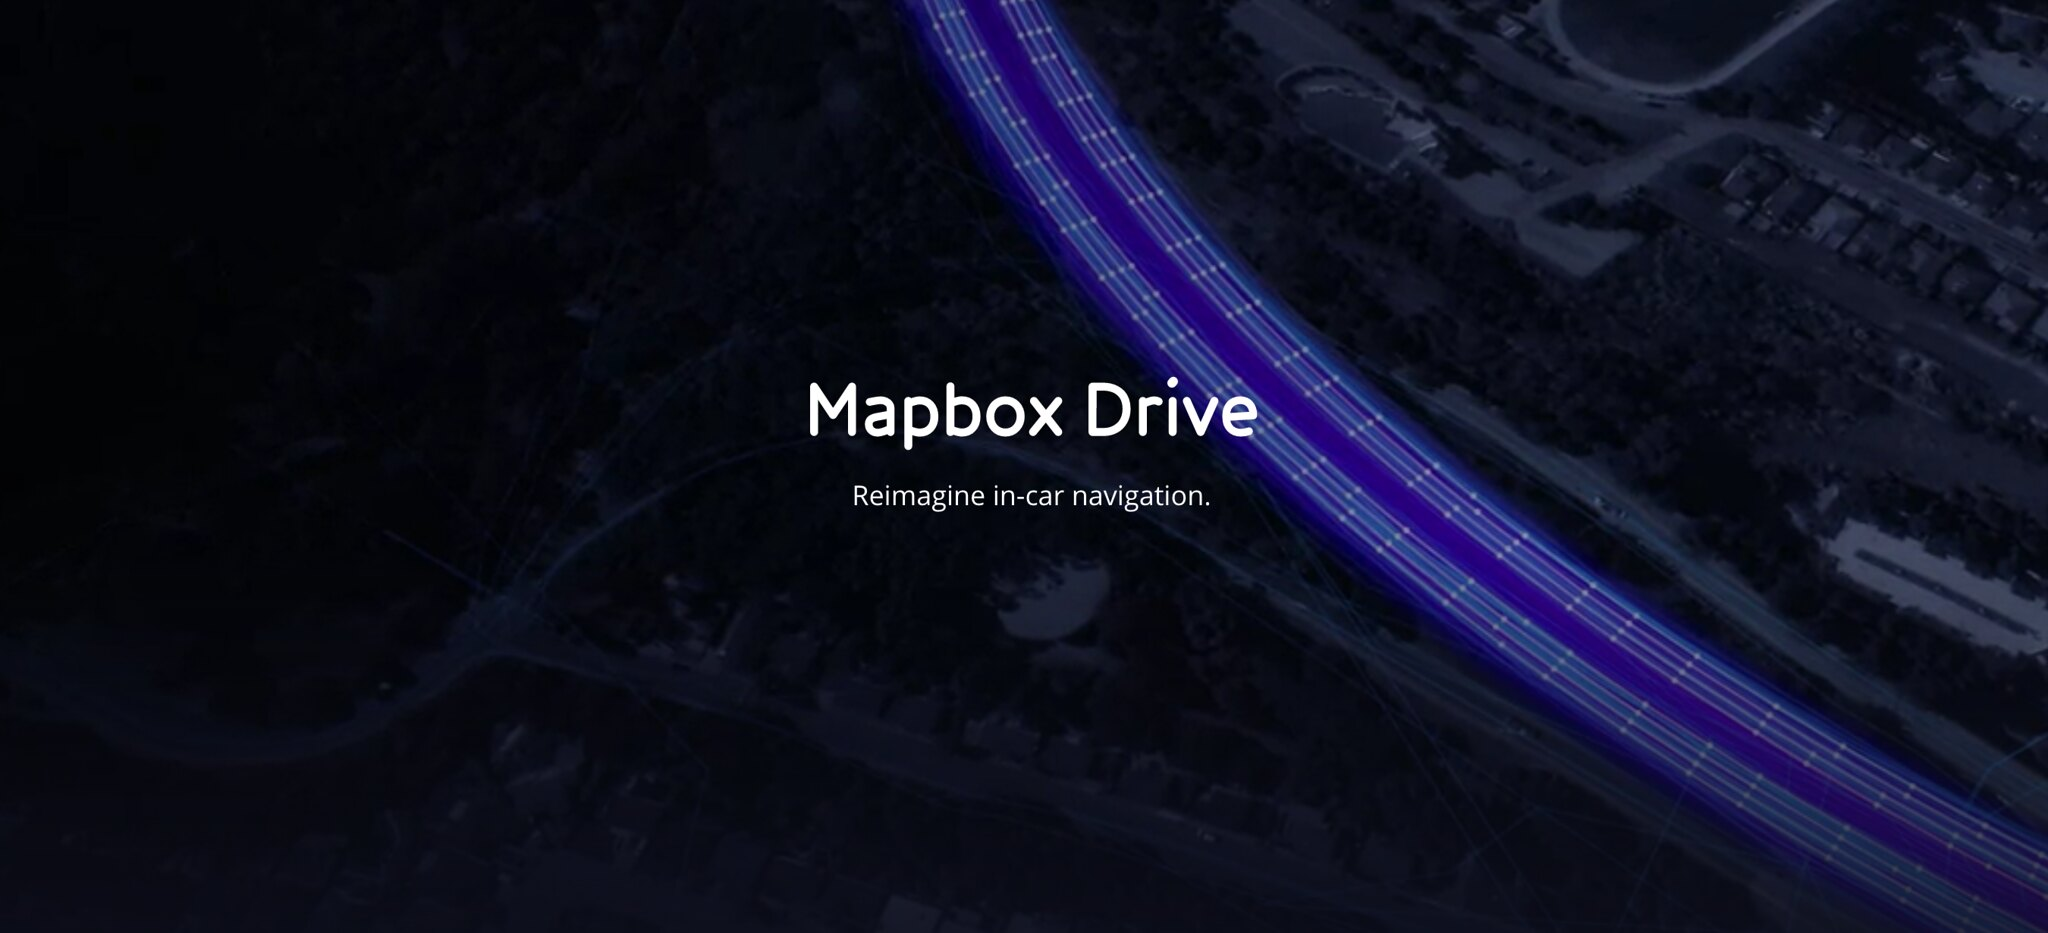 Automotive Mapbox F12 Selfdriving Gps Following Car Embedded Systems Learning